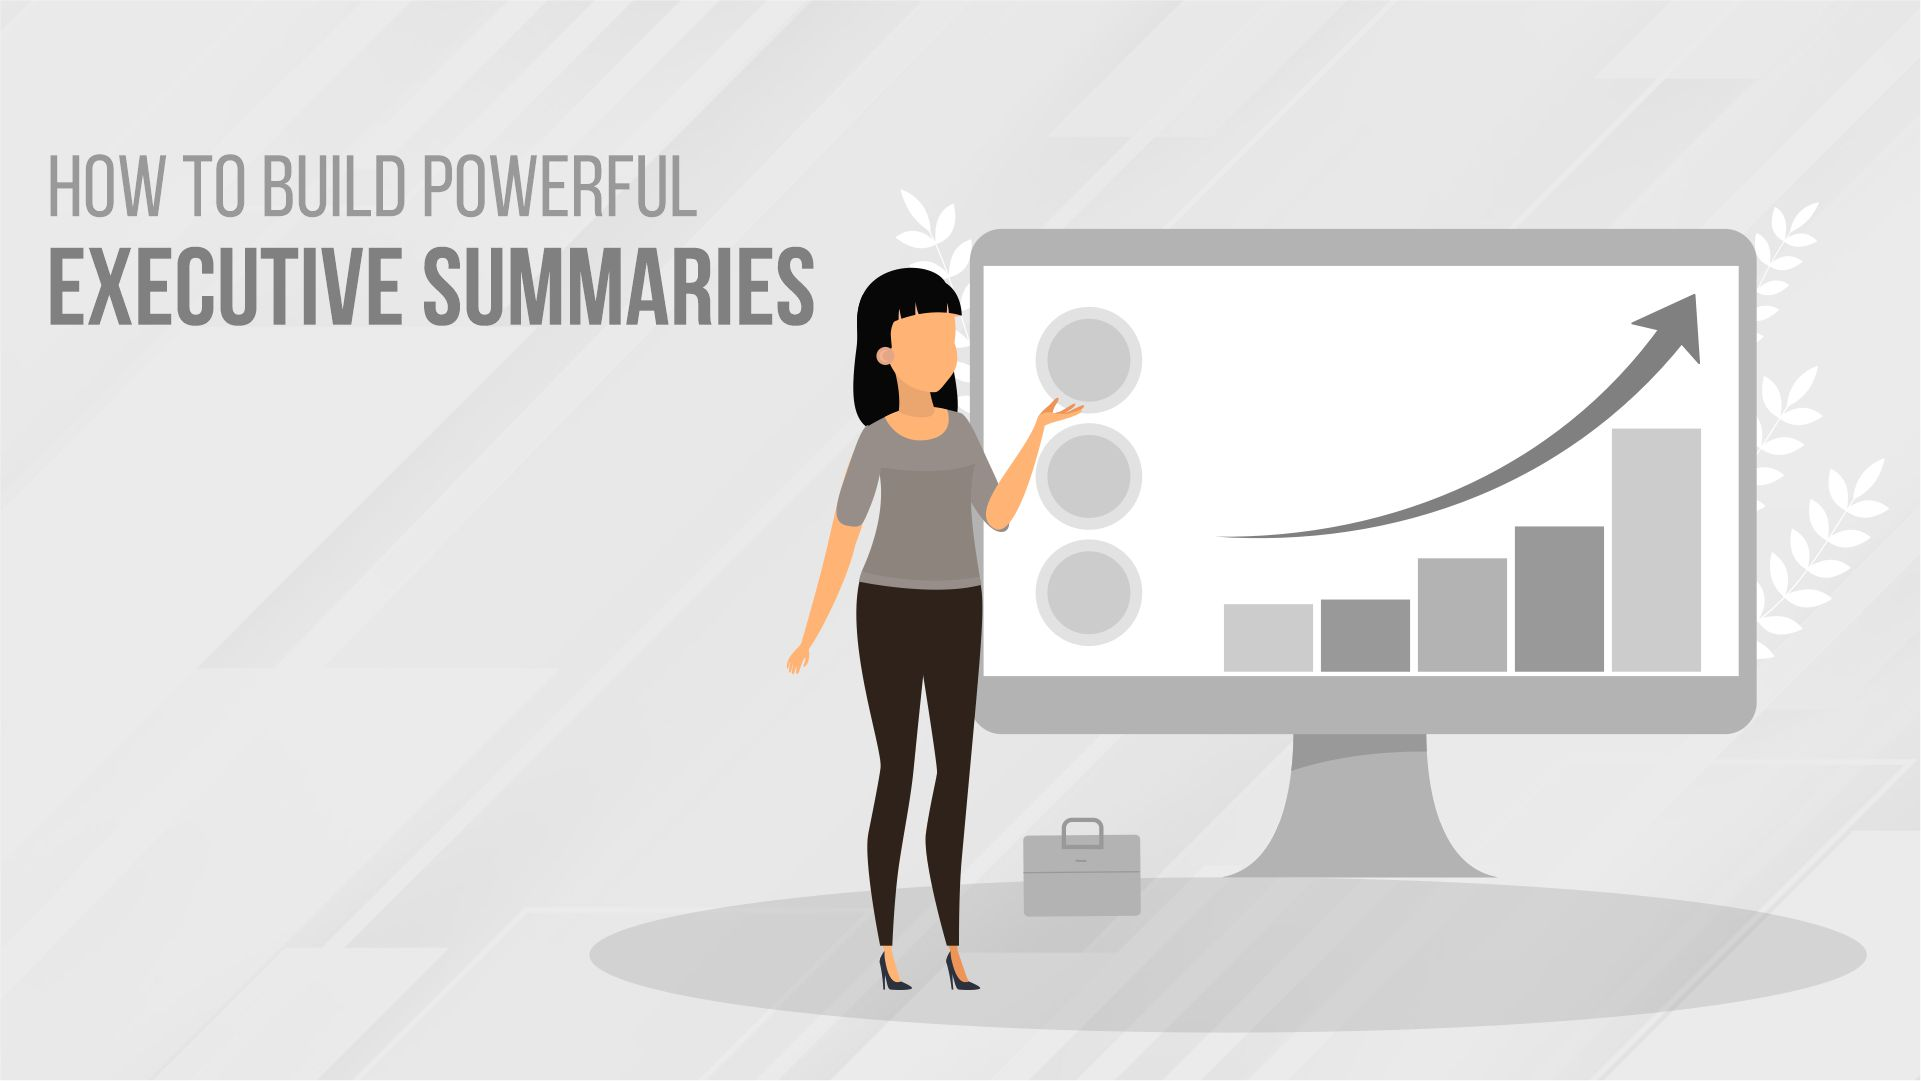 How to Build Powerful Executive Summaries